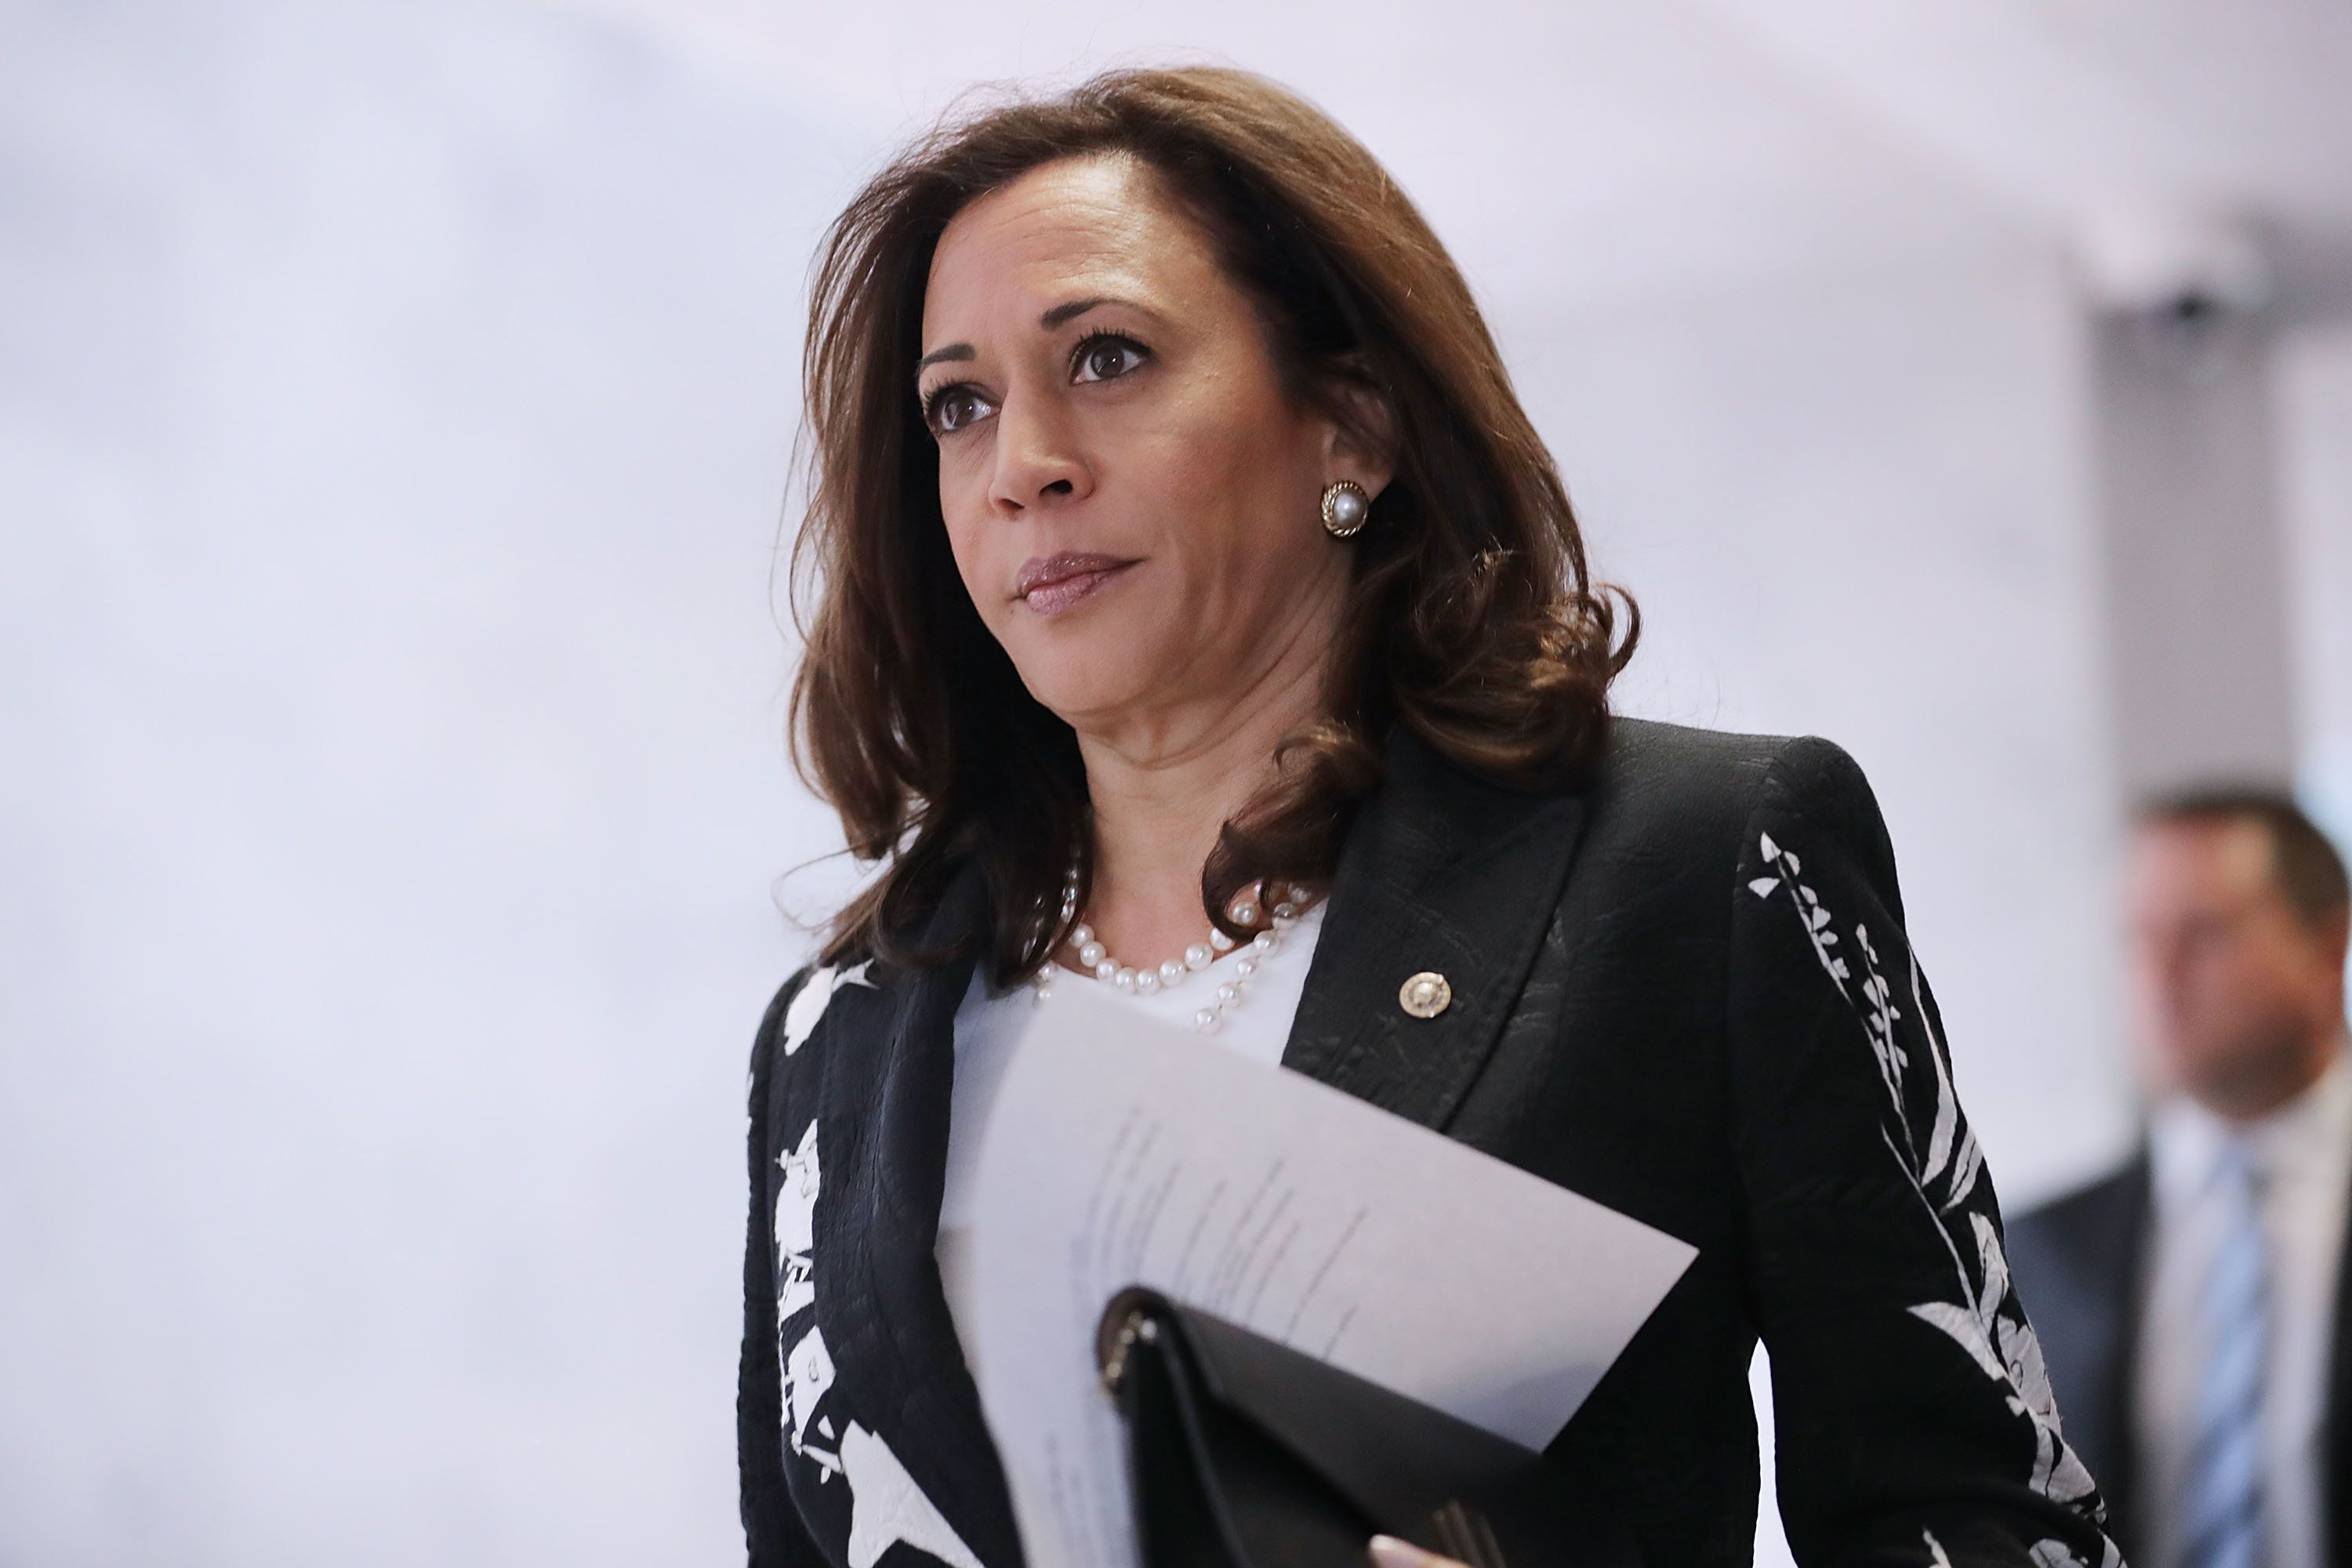 WASHINGTON, DC - JULY 27:  Sen. Kamala Harris (D-CA) heads to a closed-door meeing of the Senate Intelligence Committee in the Hart Senate Office Building on Capitol Hill July 27, 2017 in Washington, DC. The committee is continuing its investigation into Russian meddling in the 2016 presidential election.  (Photo by Chip Somodevilla/Getty Images)